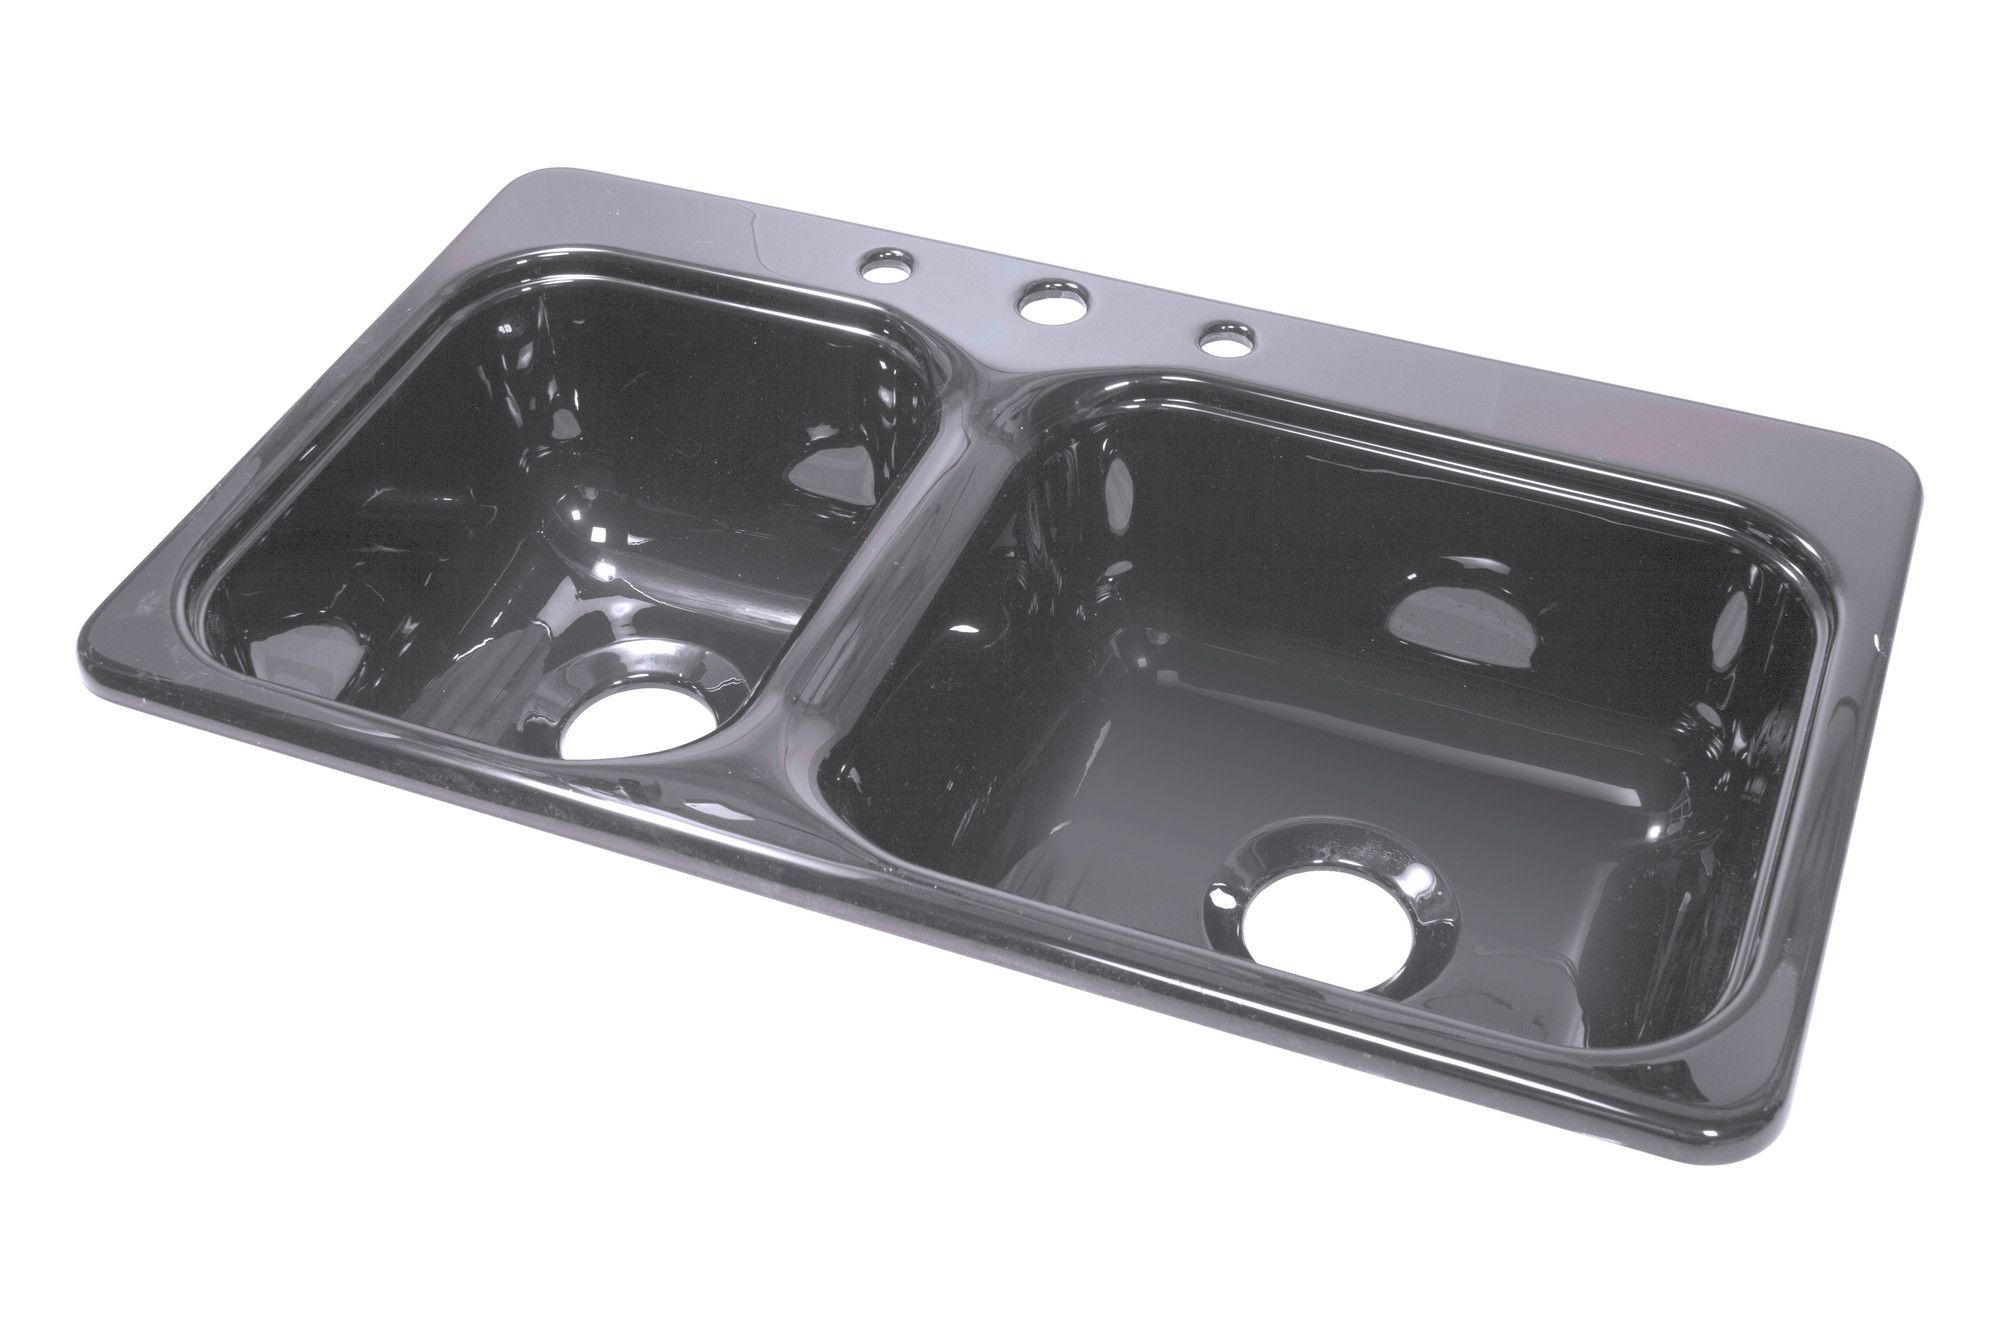 hahn kitchen sinks Elkay Gourmet 43 22 Self Rimming Single Bowl Kitchen Sink